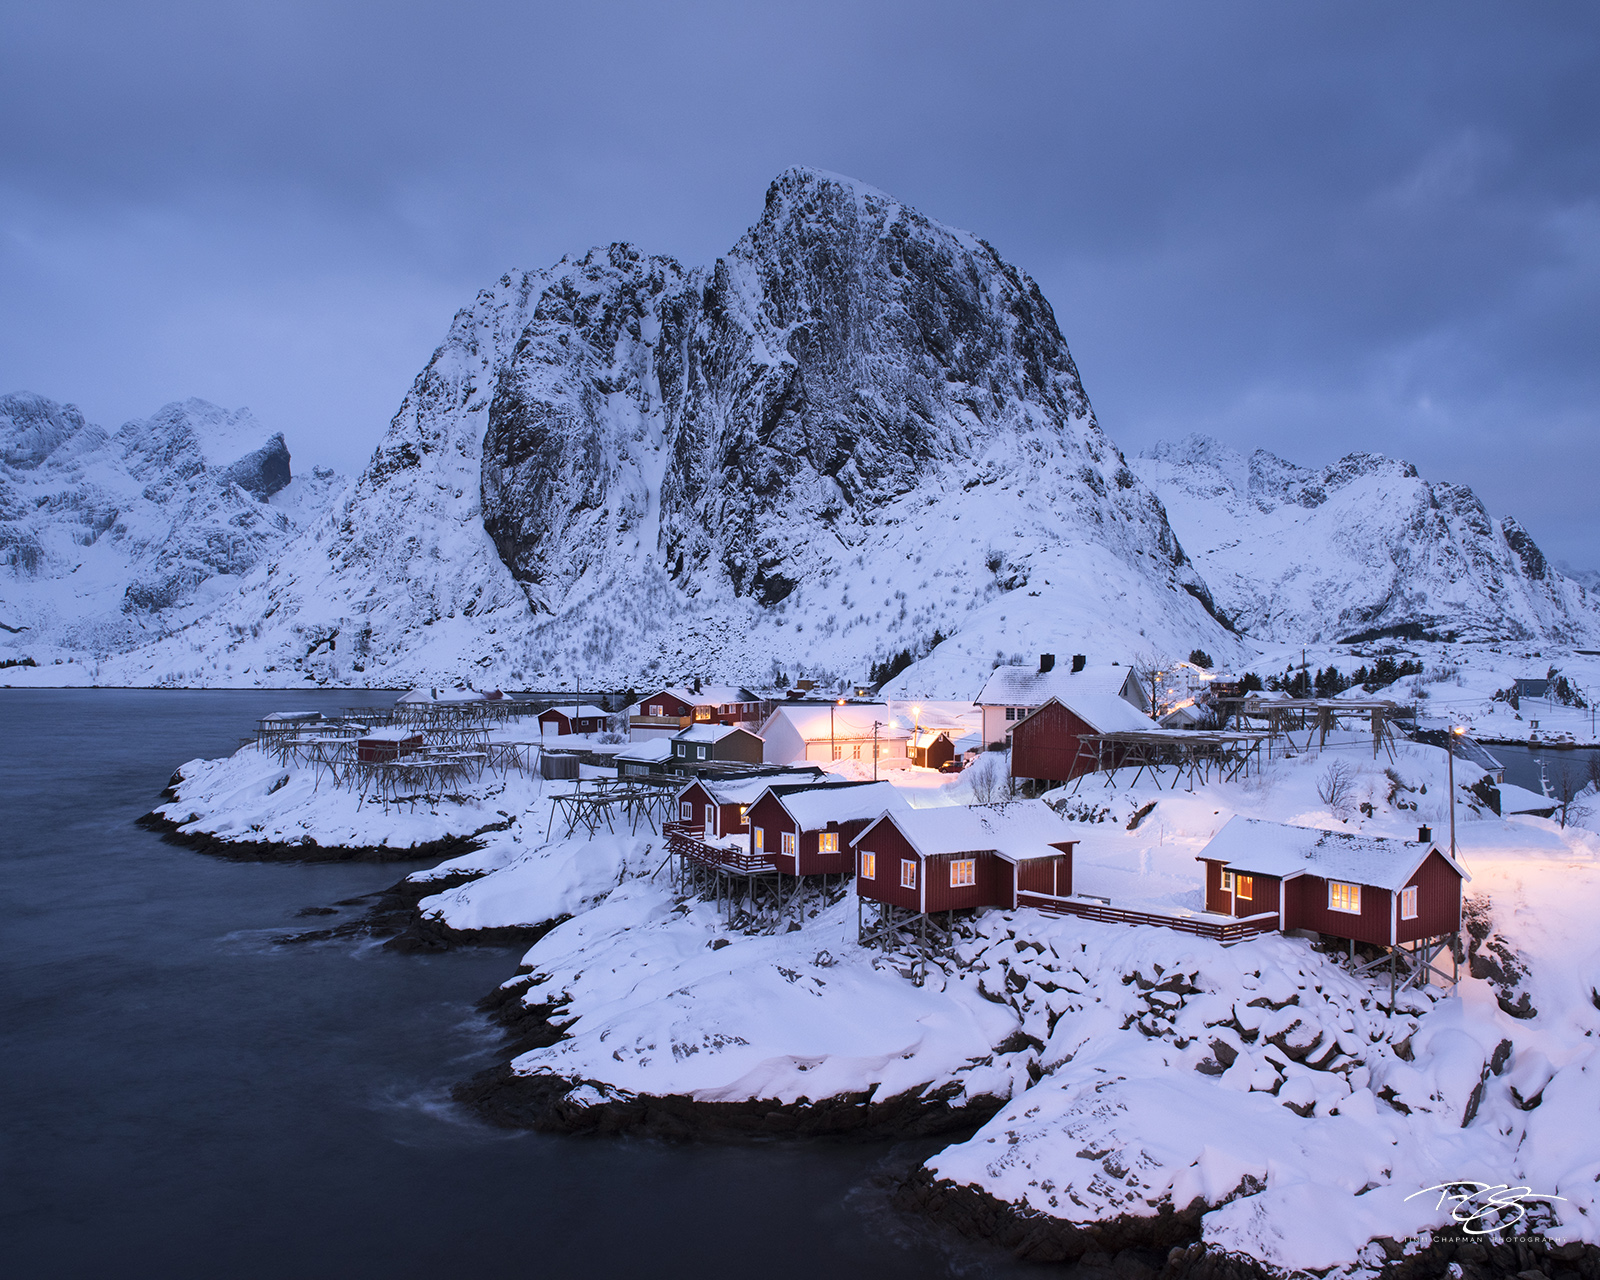 A cold winter's night begins to descend on a small fishing village